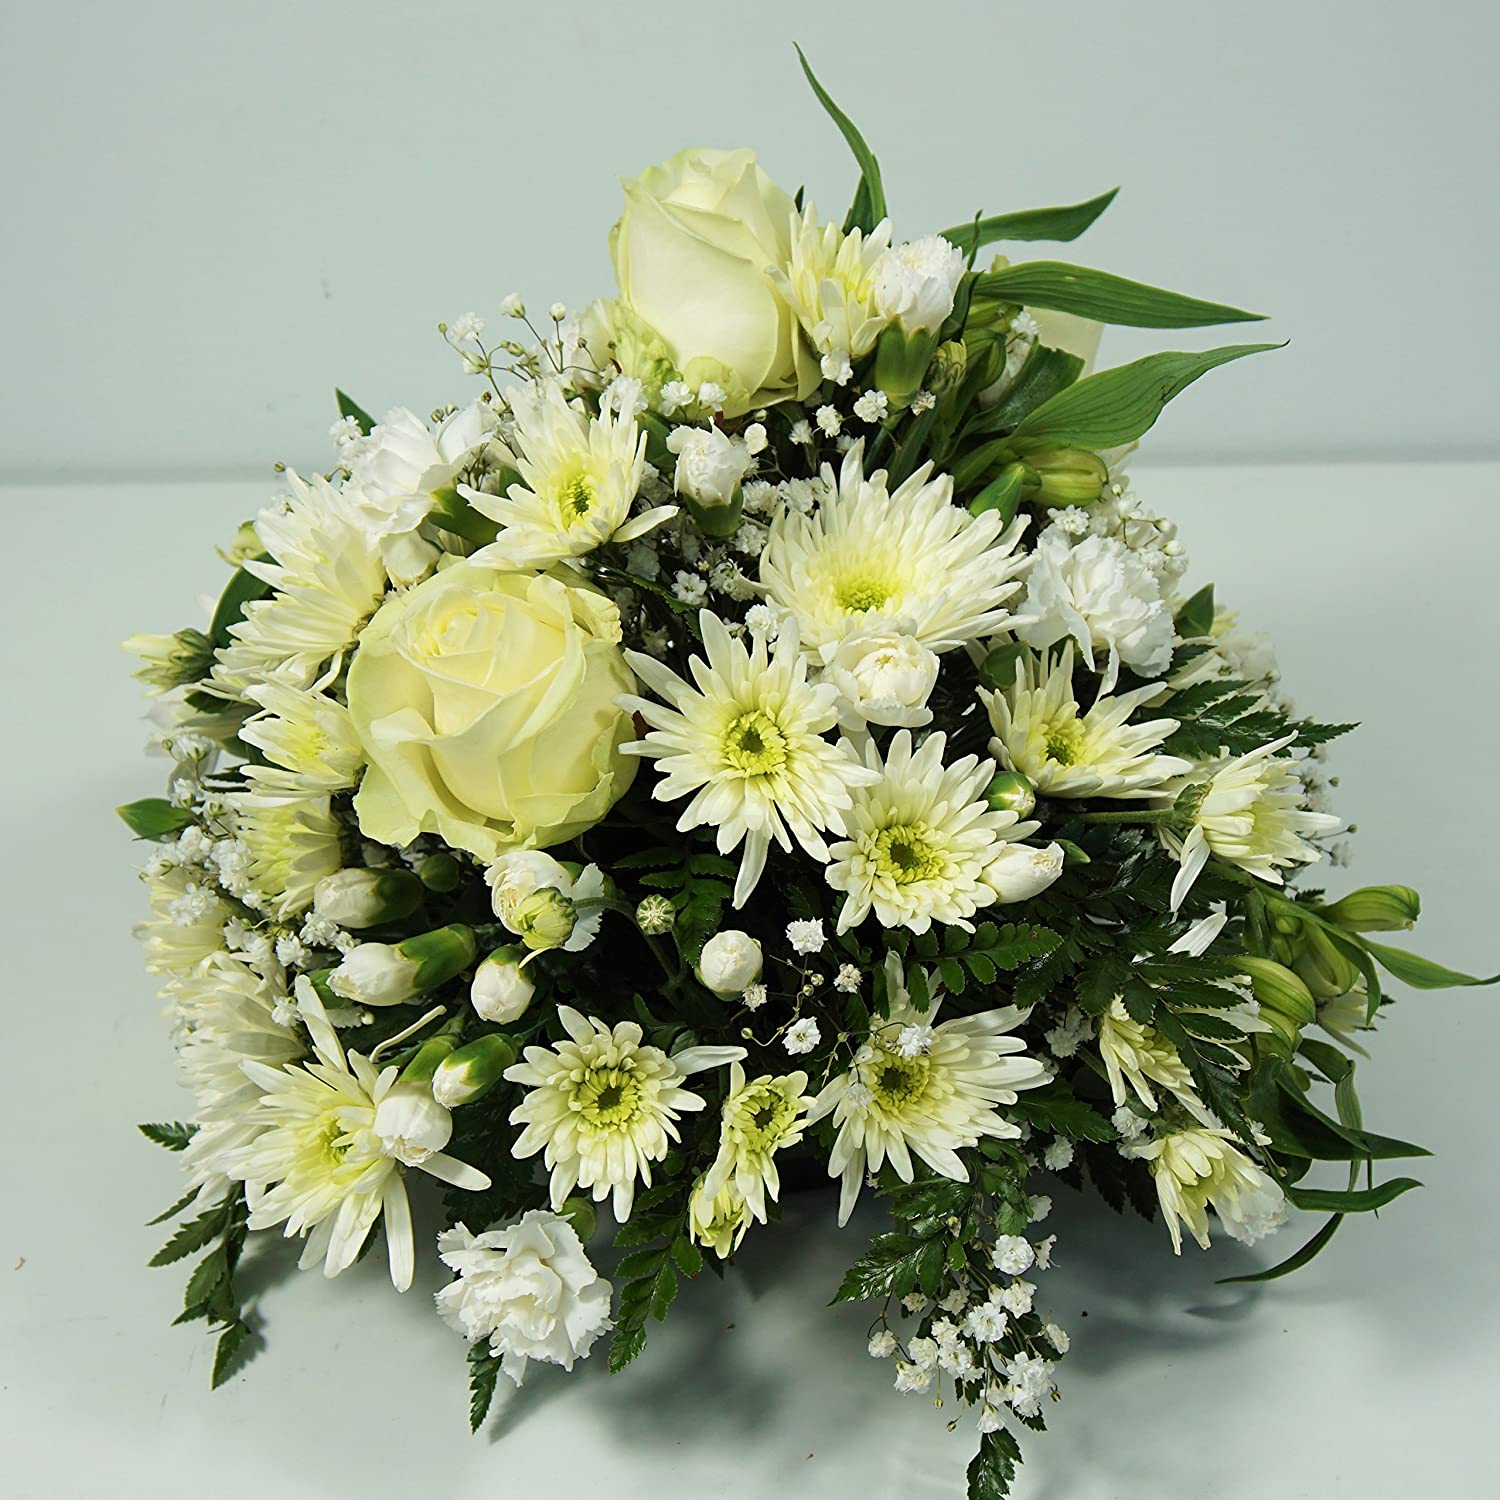 All White Funeral Flower Posy Delivered Next Day Uk Free In 1hr